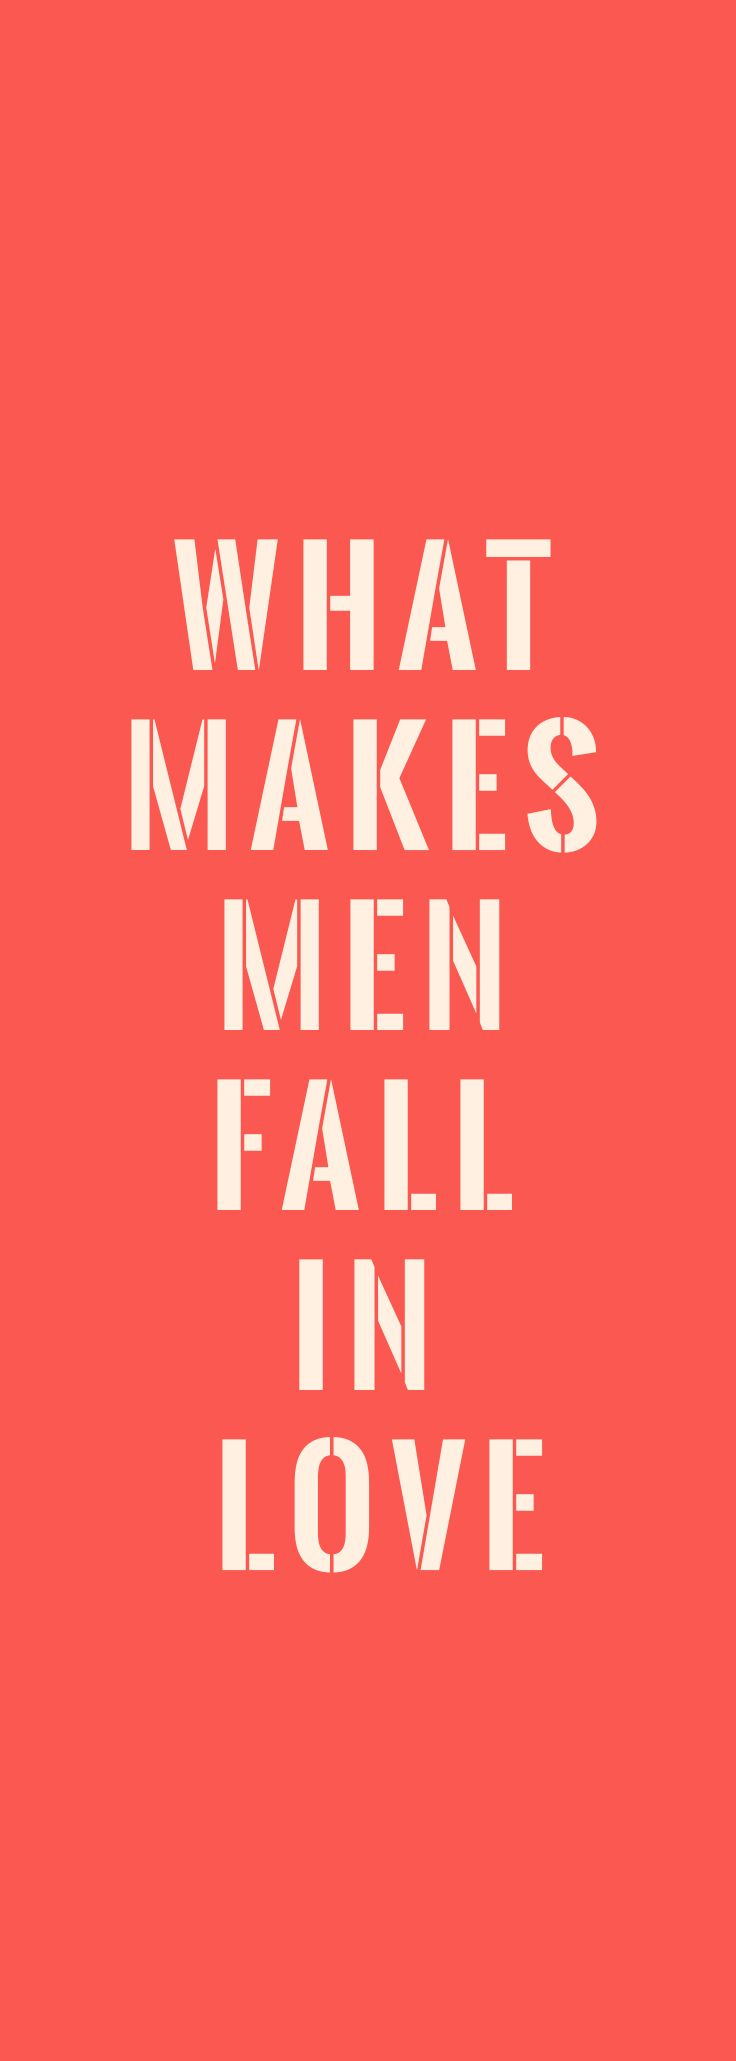 Love Quotes For Men Love Quotes  What Makes Men Fall In Love  Hall Of Quotes  Your